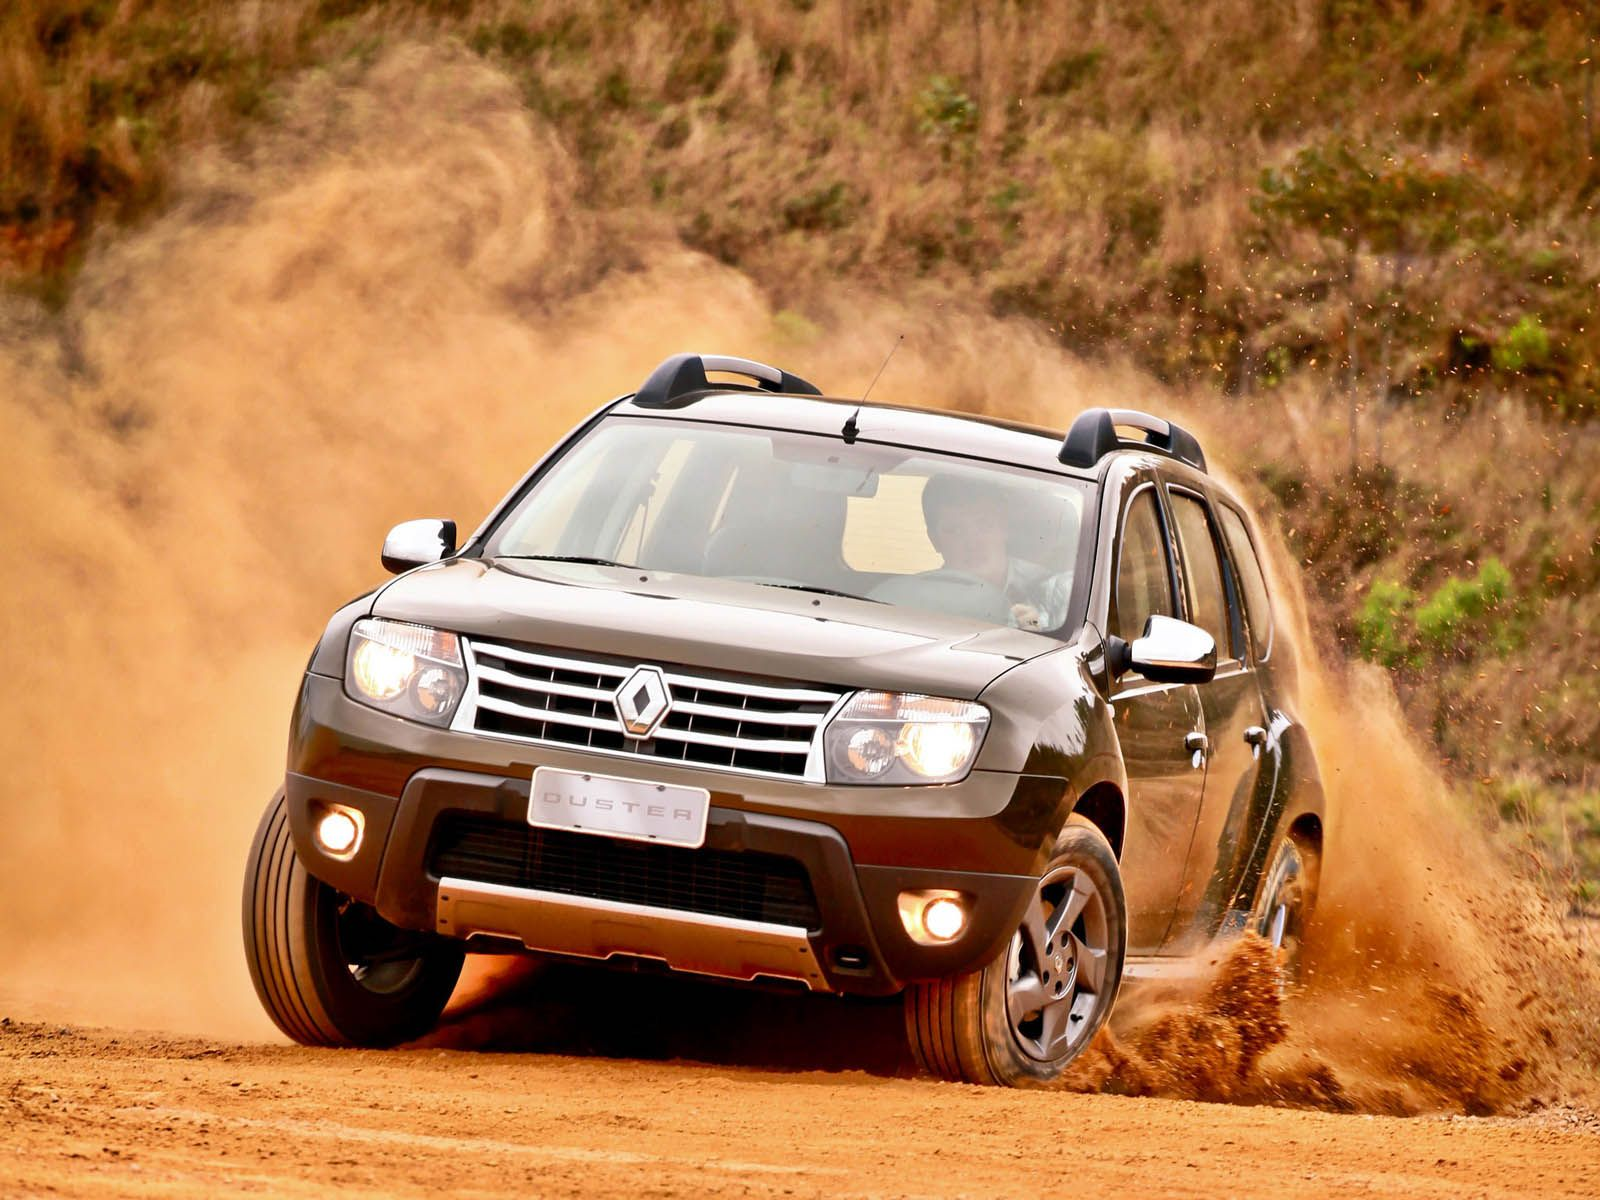 Renault duster hd wallpaper download 3d wallpapers pinterest renault duster hd wallpaper download voltagebd Image collections